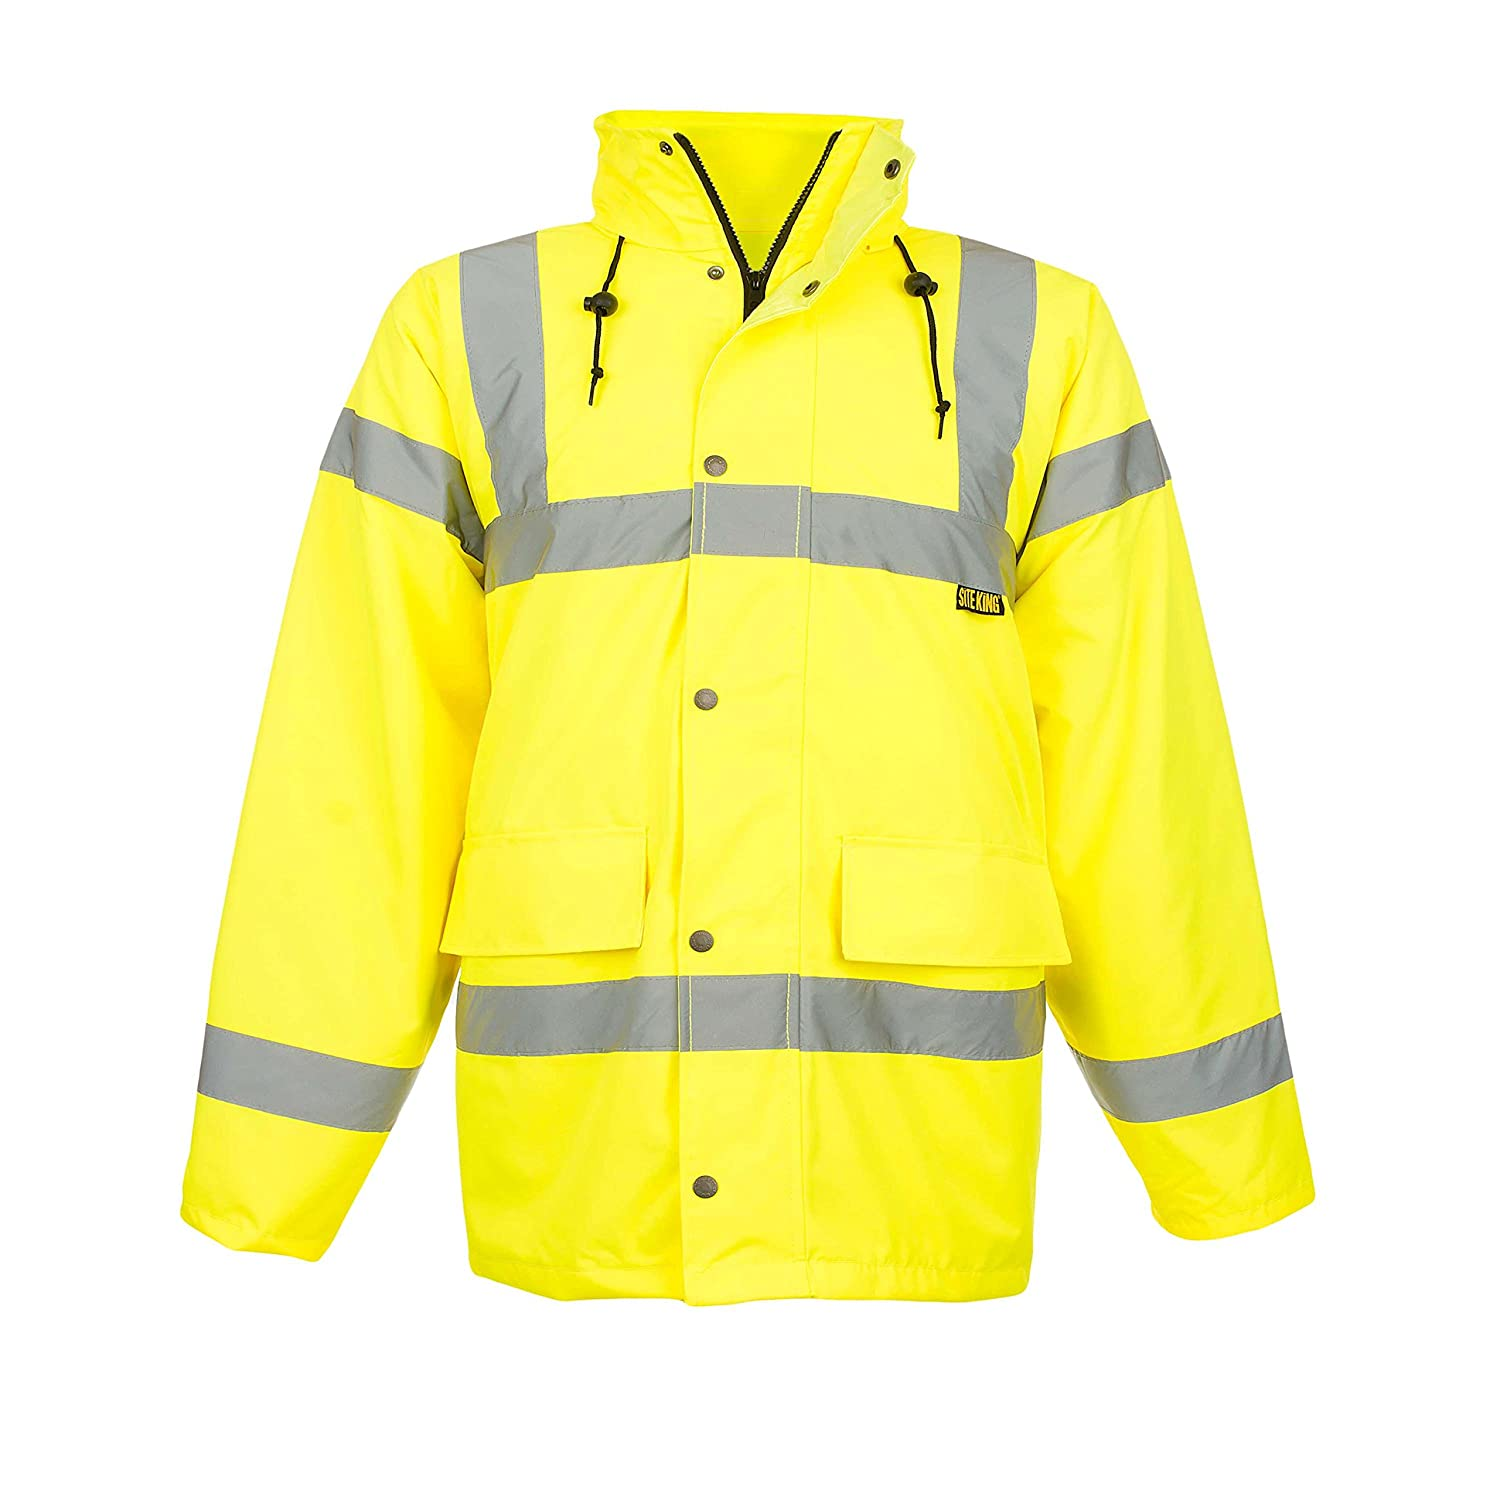 Mens Hi Visibility Road Safety Jacket Size S to 5XL By SITE KING - HI VIS VIZ COAT RAILWAY GORT WORK SITE KING COATS